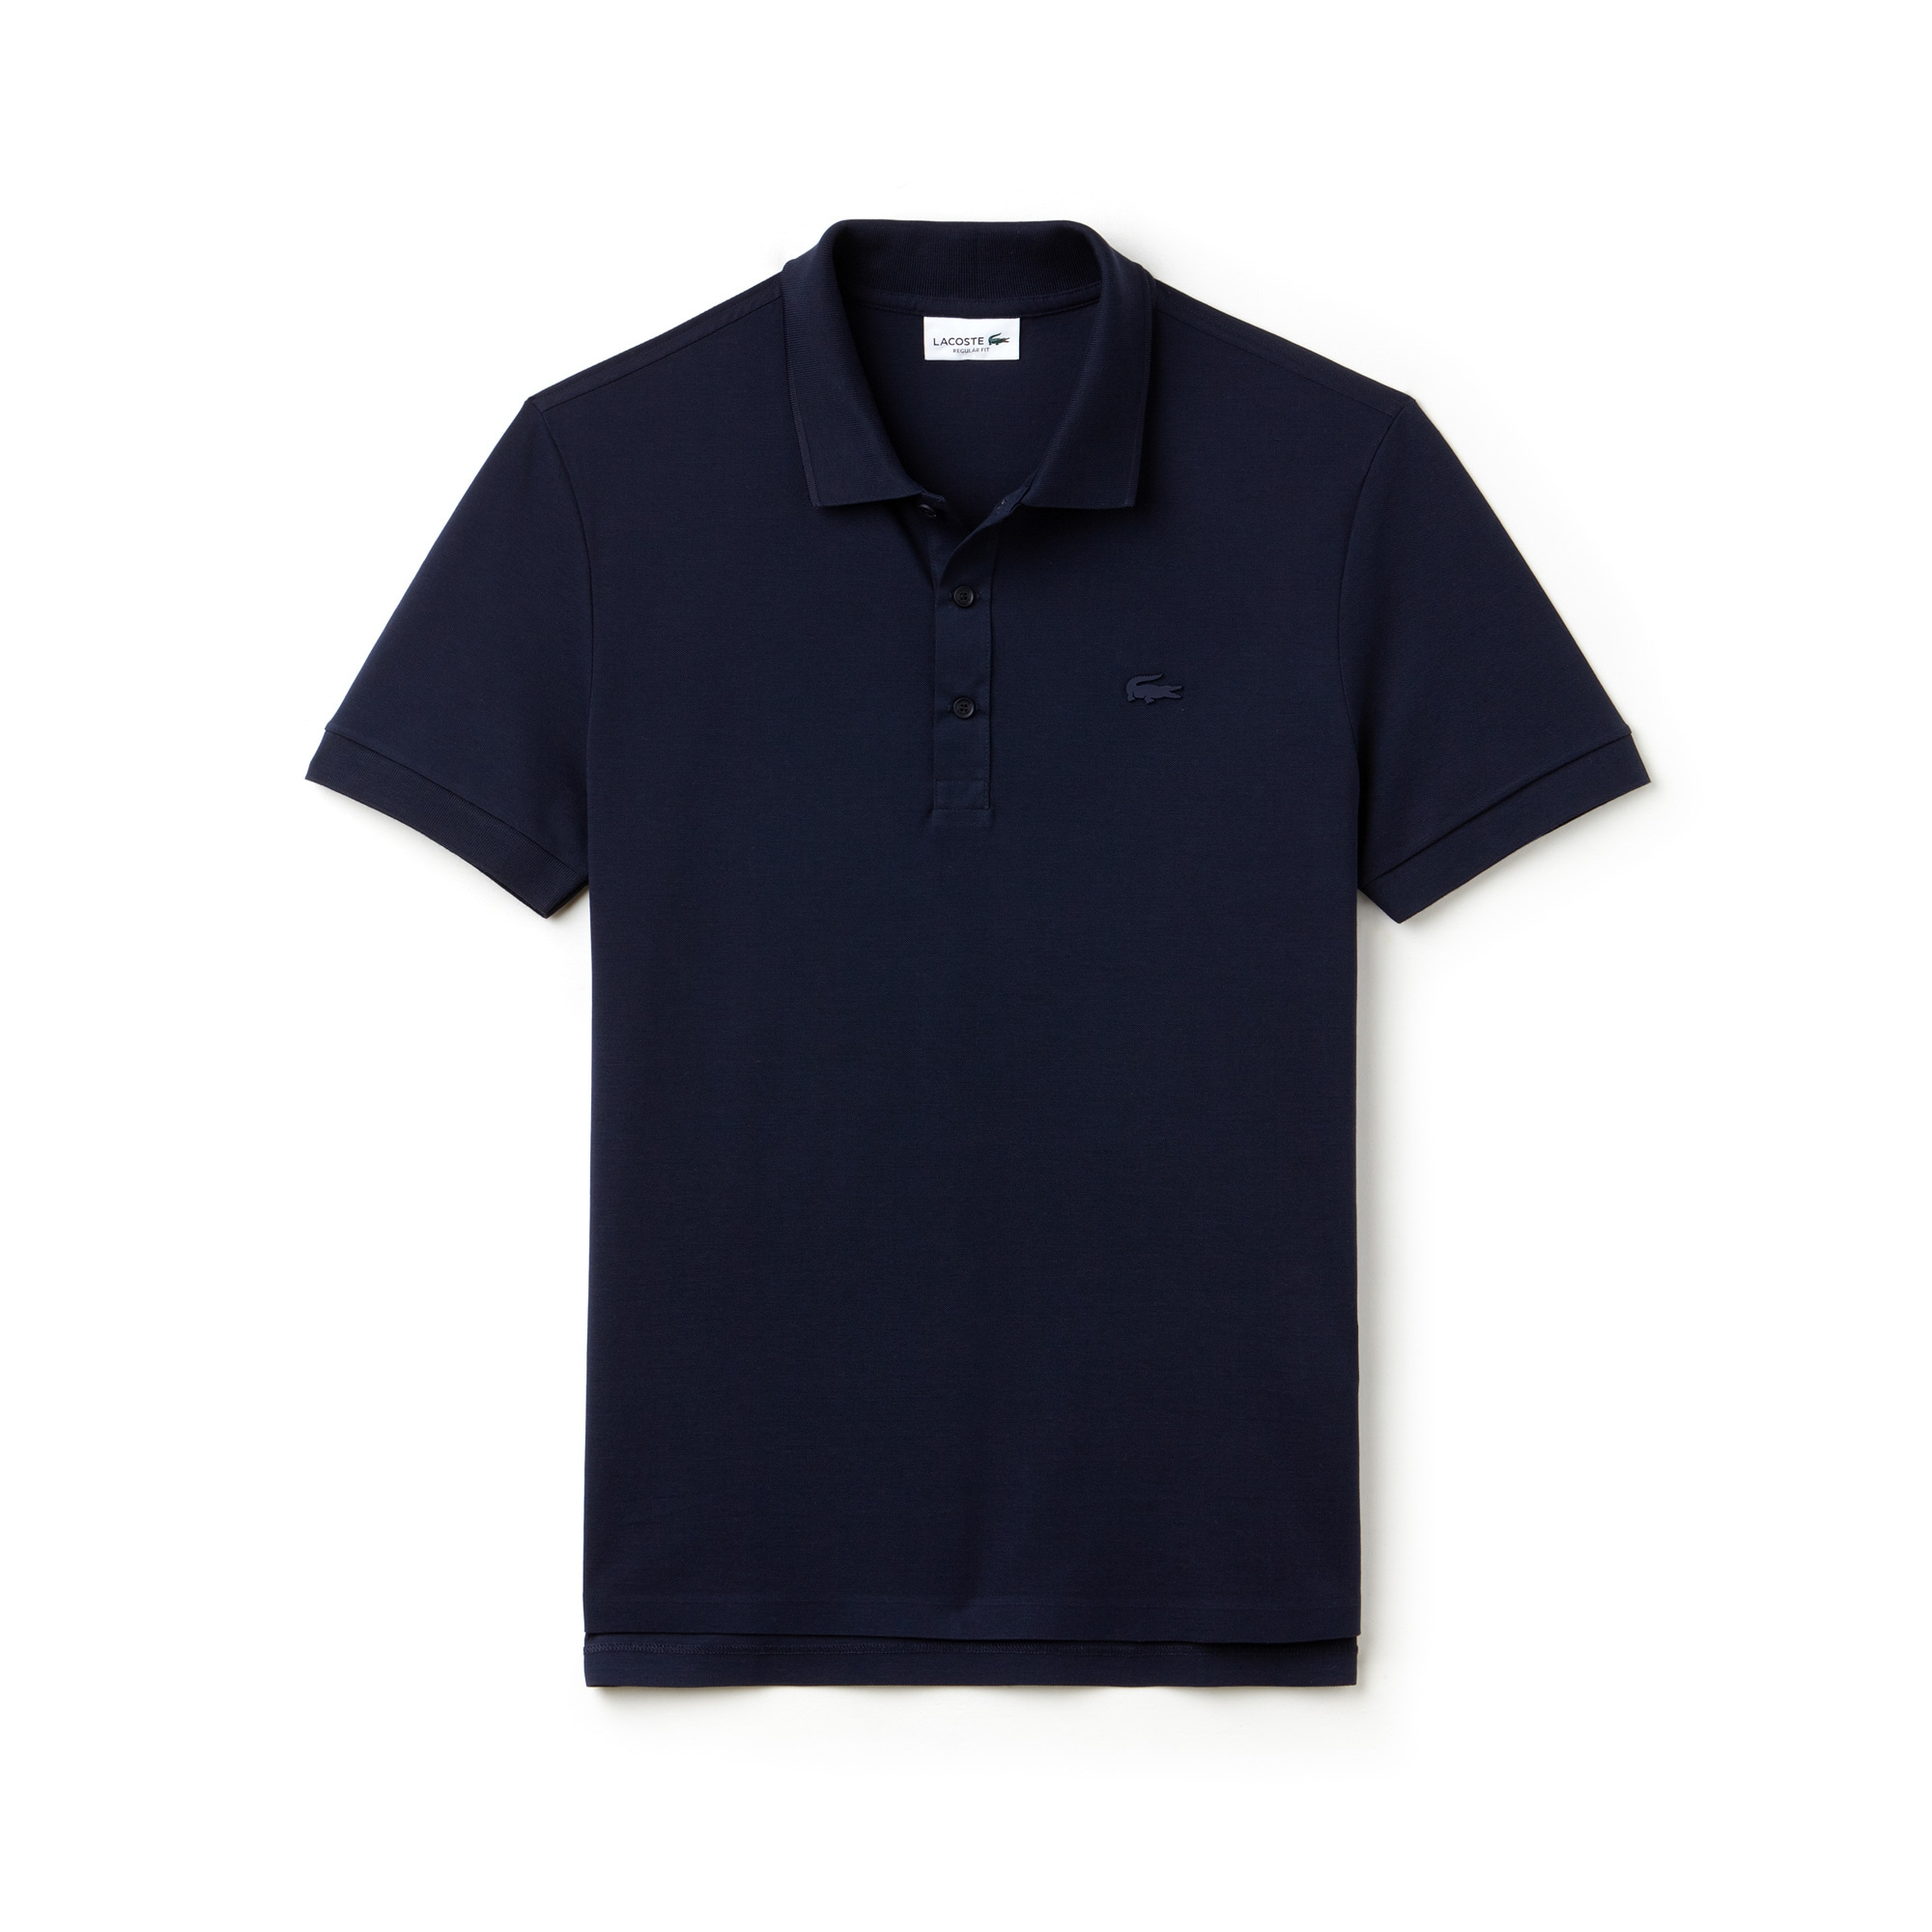 Men's Lacoste MOTION Regular Fit Pima Cotton Piqué Polo